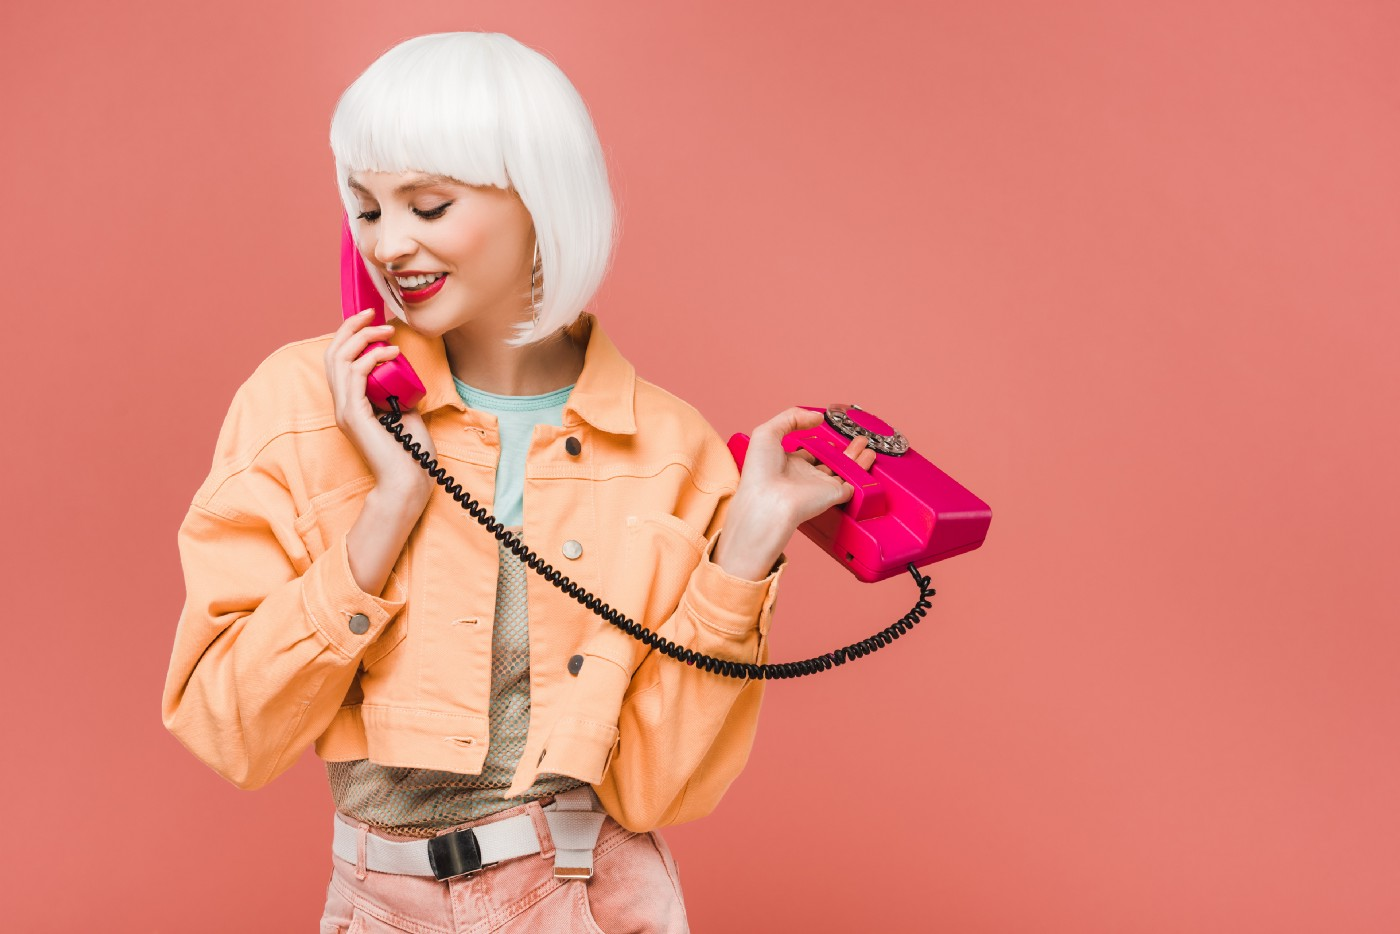 young woman in white-blonde wig wearing an orange jacket talking on a hot pink corded phone on dusty rose background